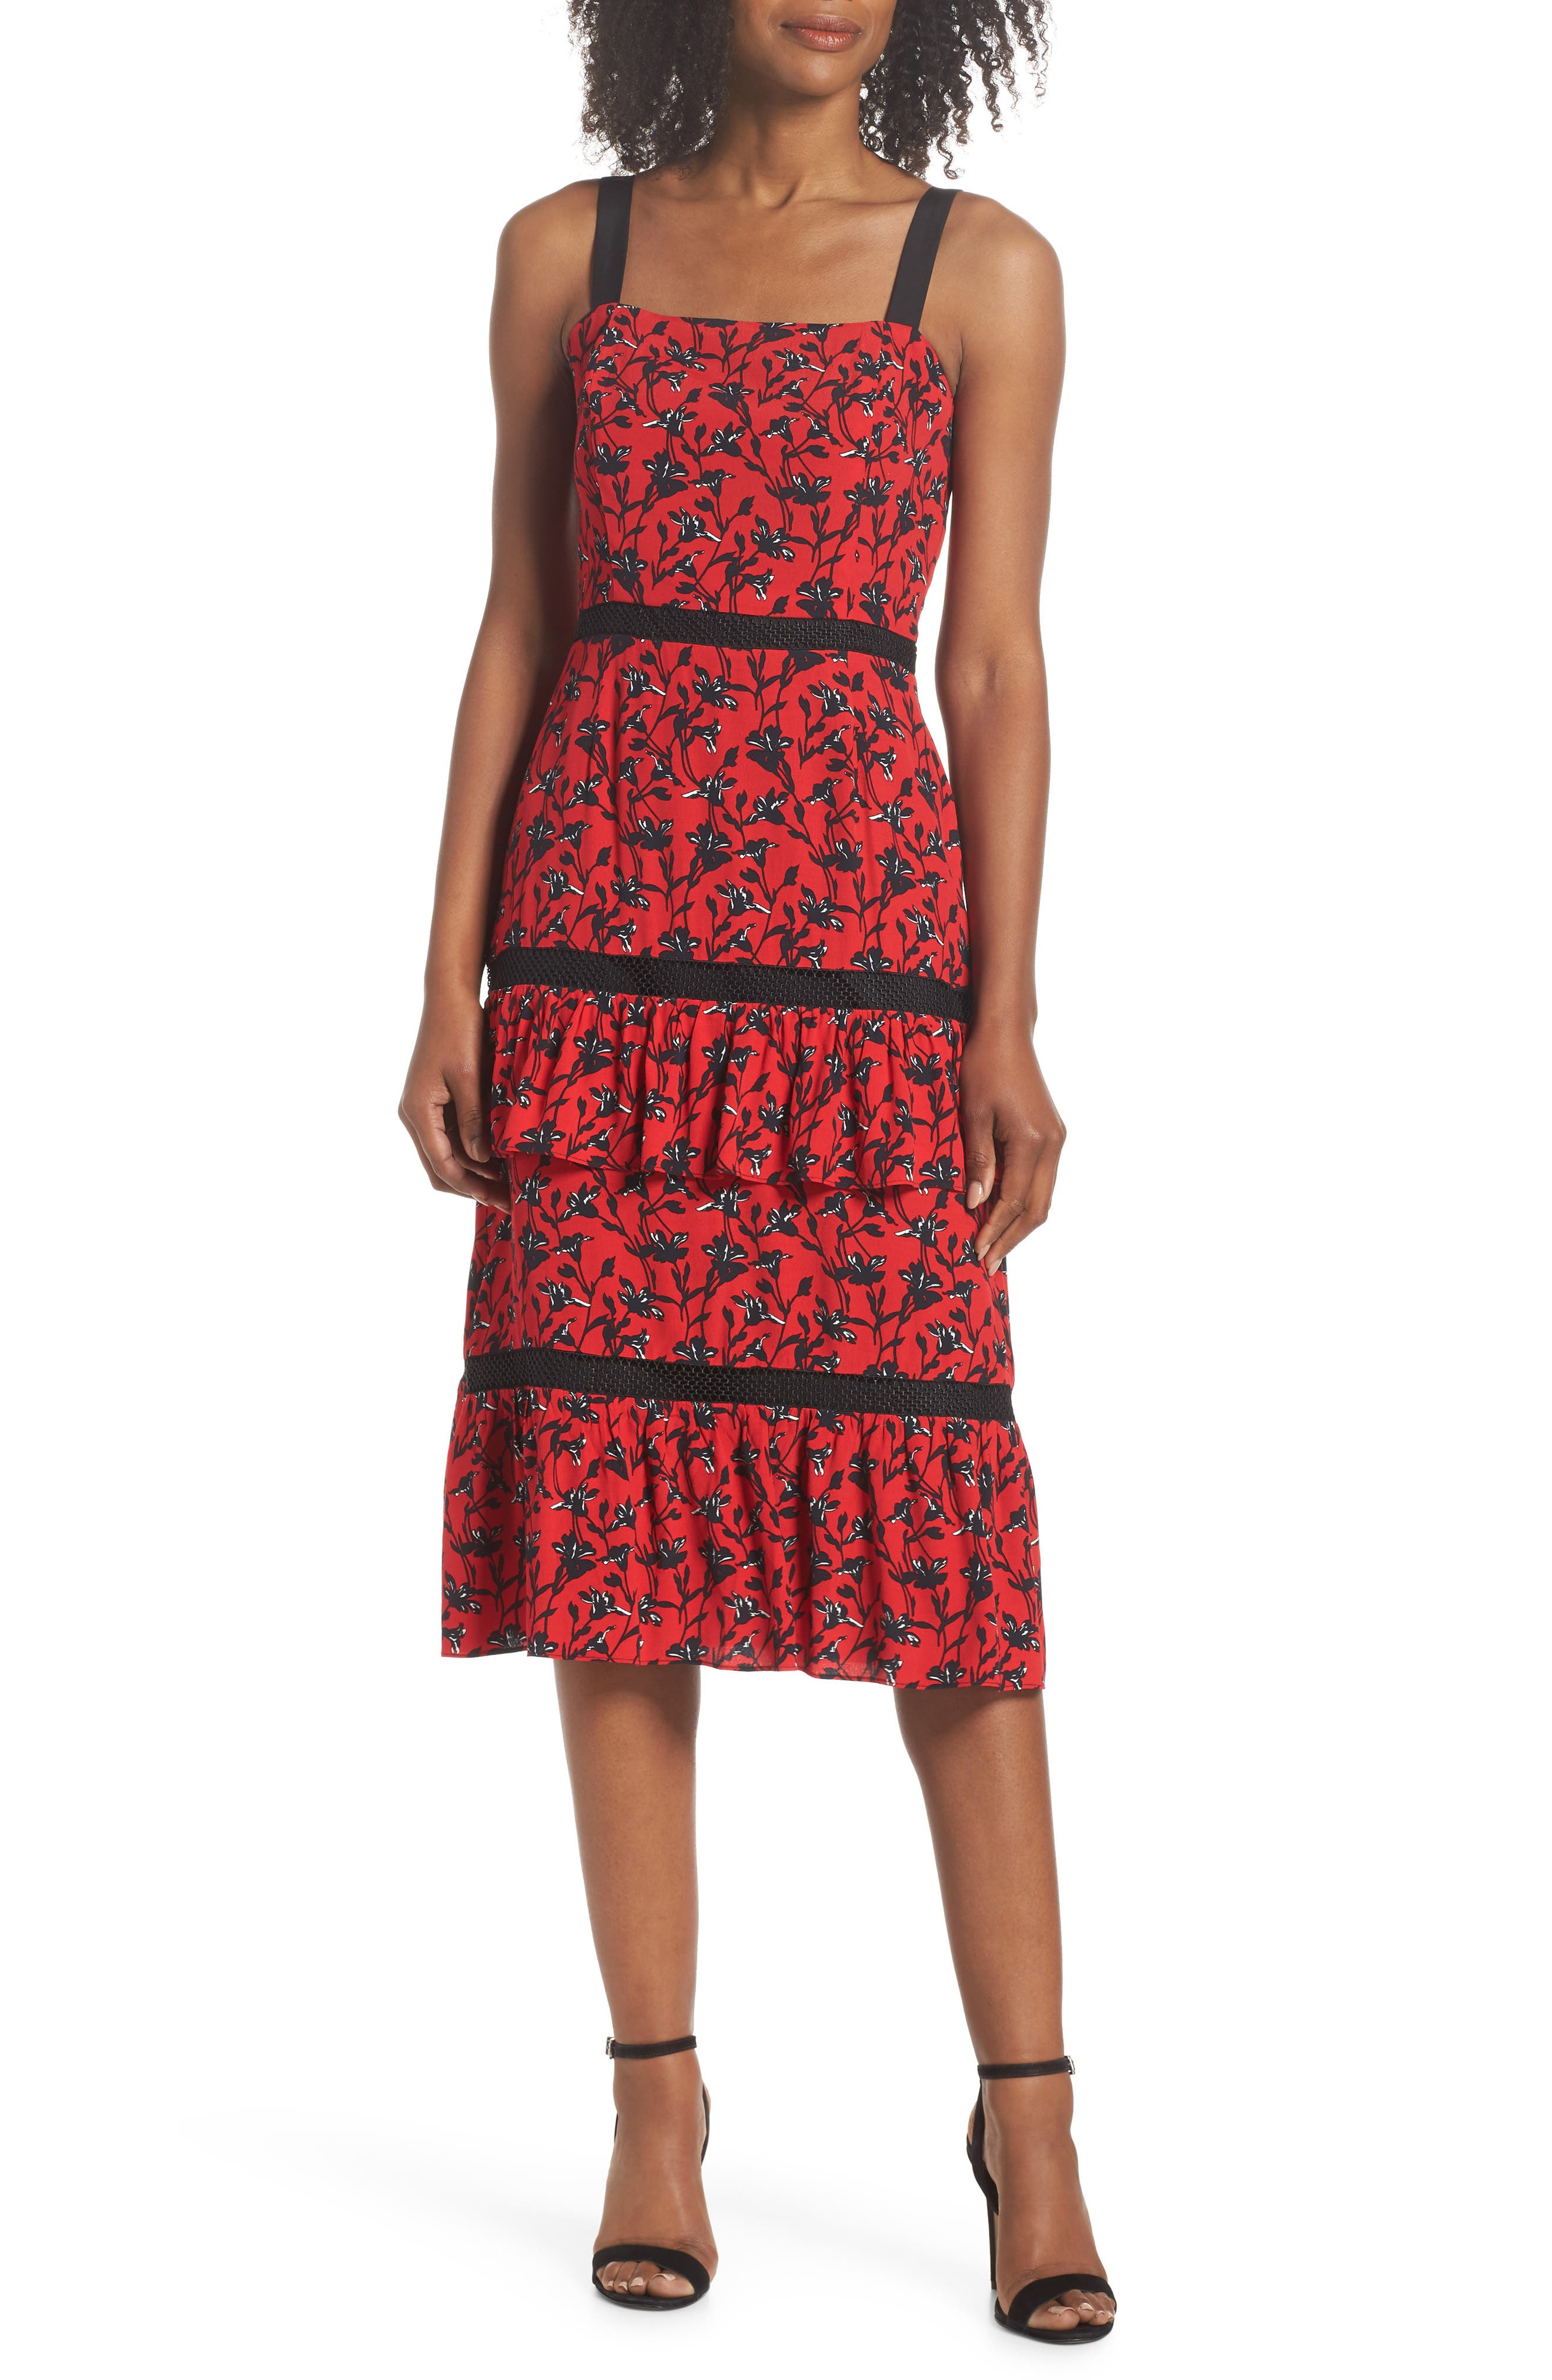 ADELYN RAE ISABEL TIERED RUFFLE MIDI DRESS